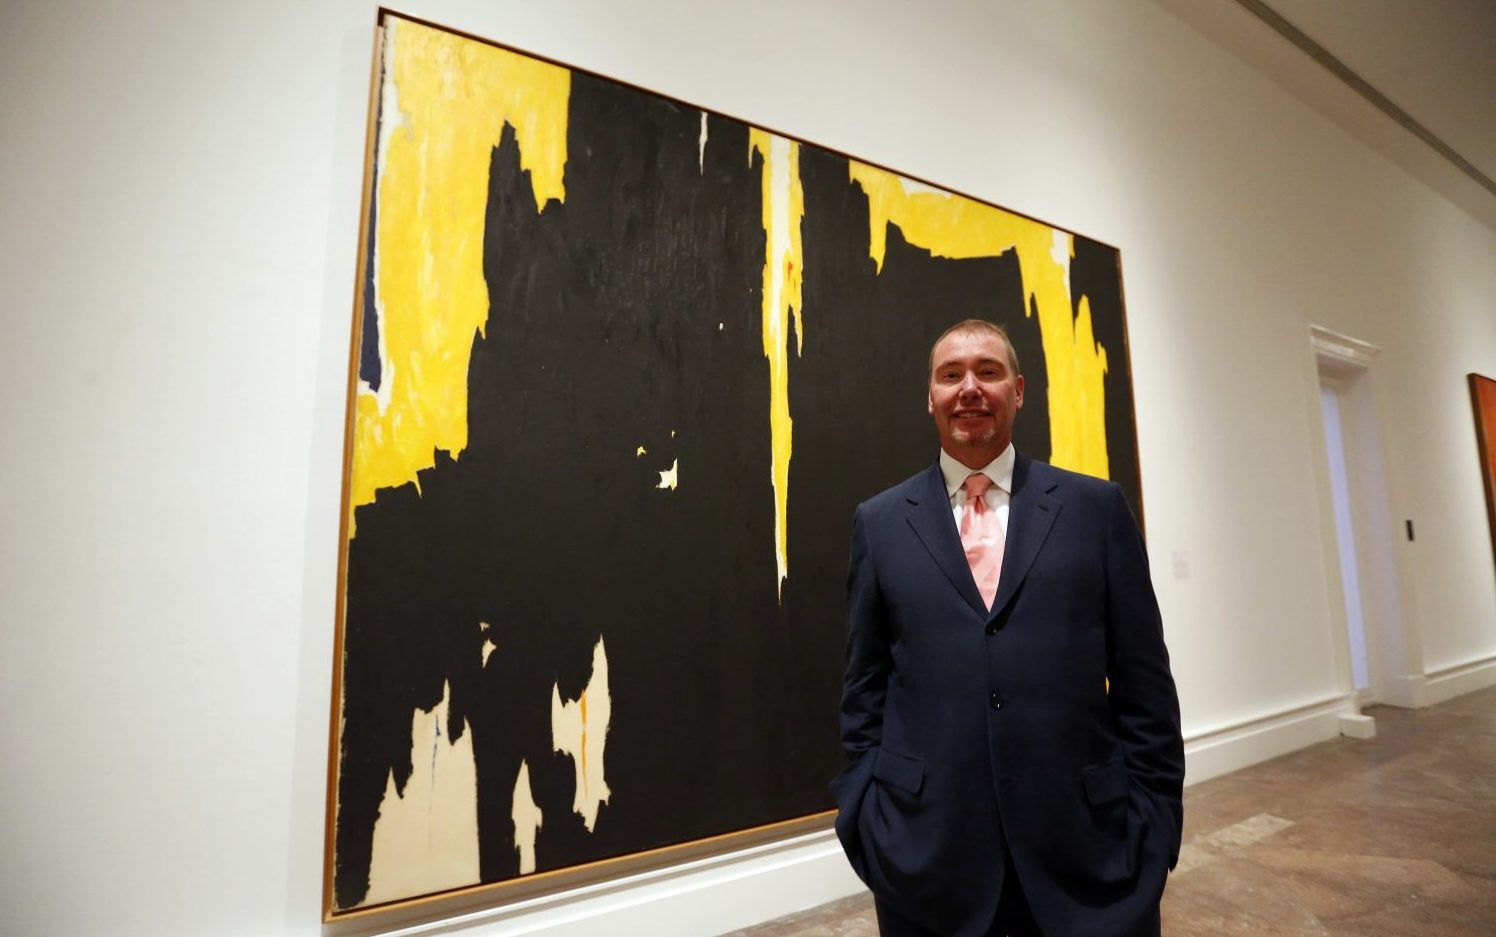 Jeffery Gundlach stands in front of Clyfford Stills painting 1957-D No. 1 in the Albright Knox Art Gallery. (Mark Mulville/Buffalo News)